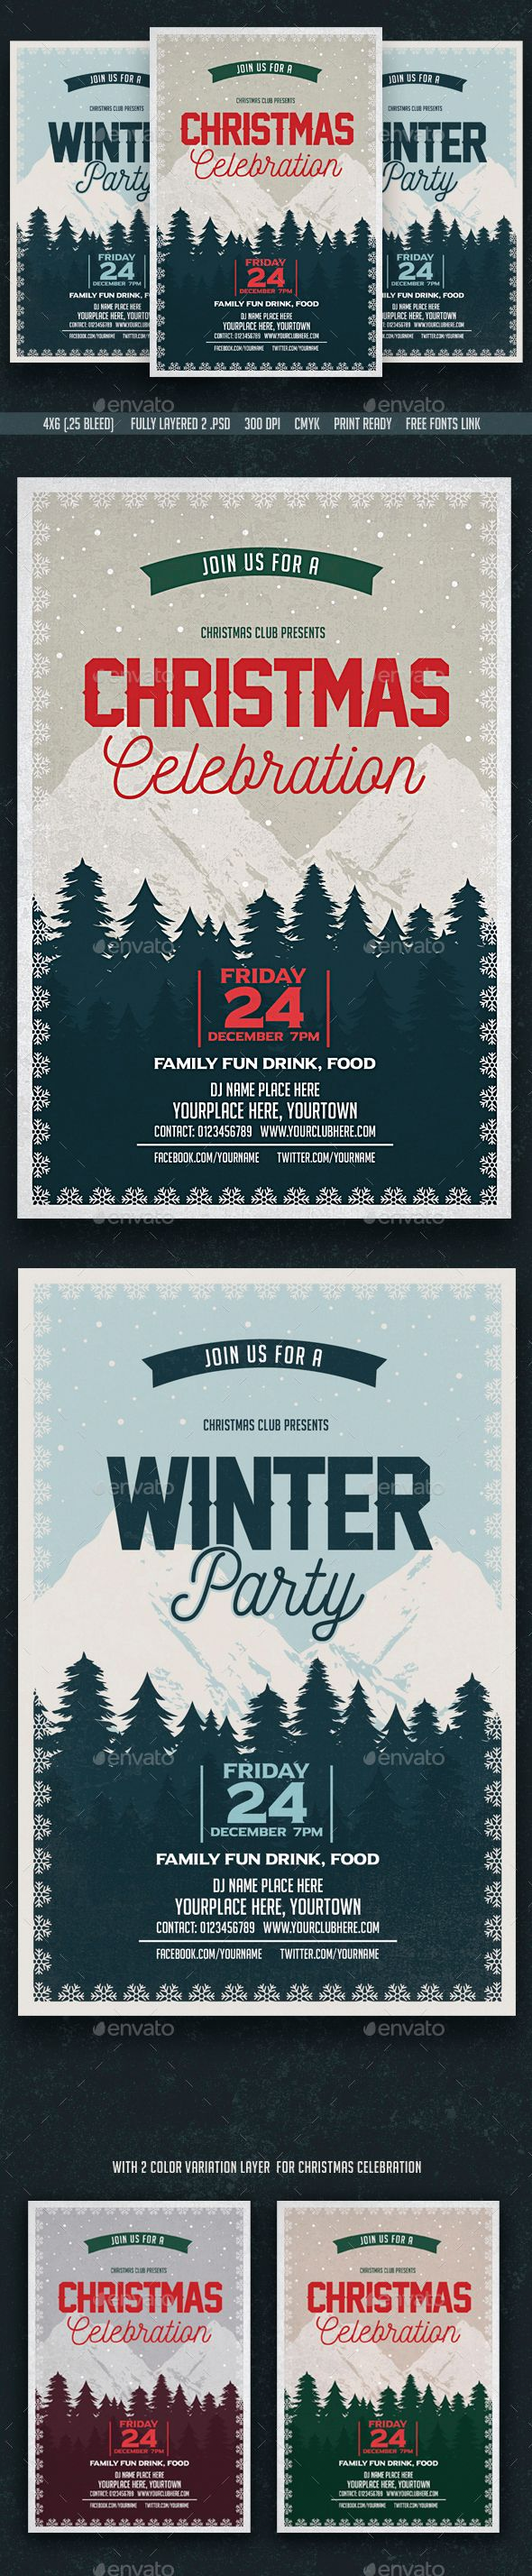 Christmas Celebration & Winter Party Flyer Template PSD #design #xmas Download: http://graphicriver.net/item/christmas-celebration-winter-party-flyer/13505209?ref=ksioks